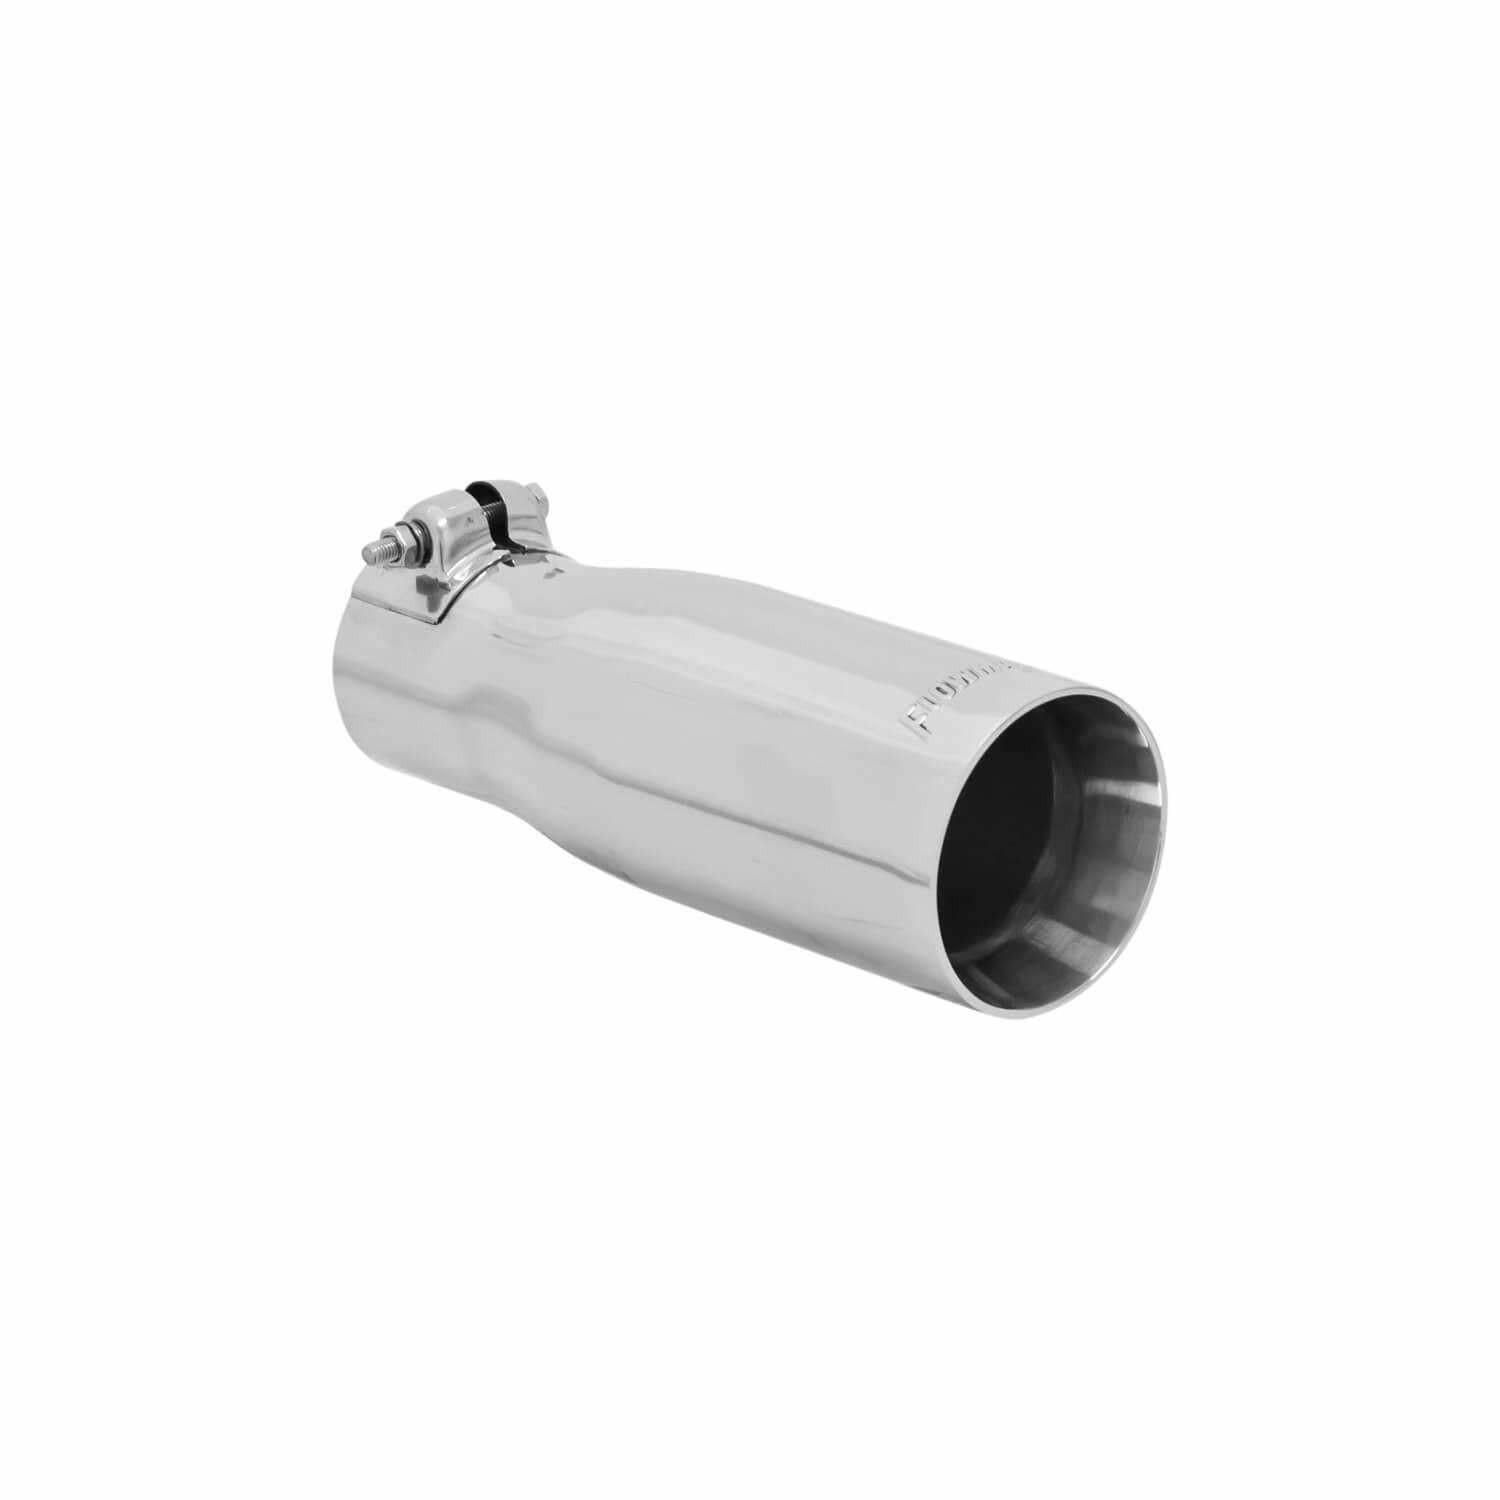 15375 Flowmaster Stainless Steel Exhaust Tip